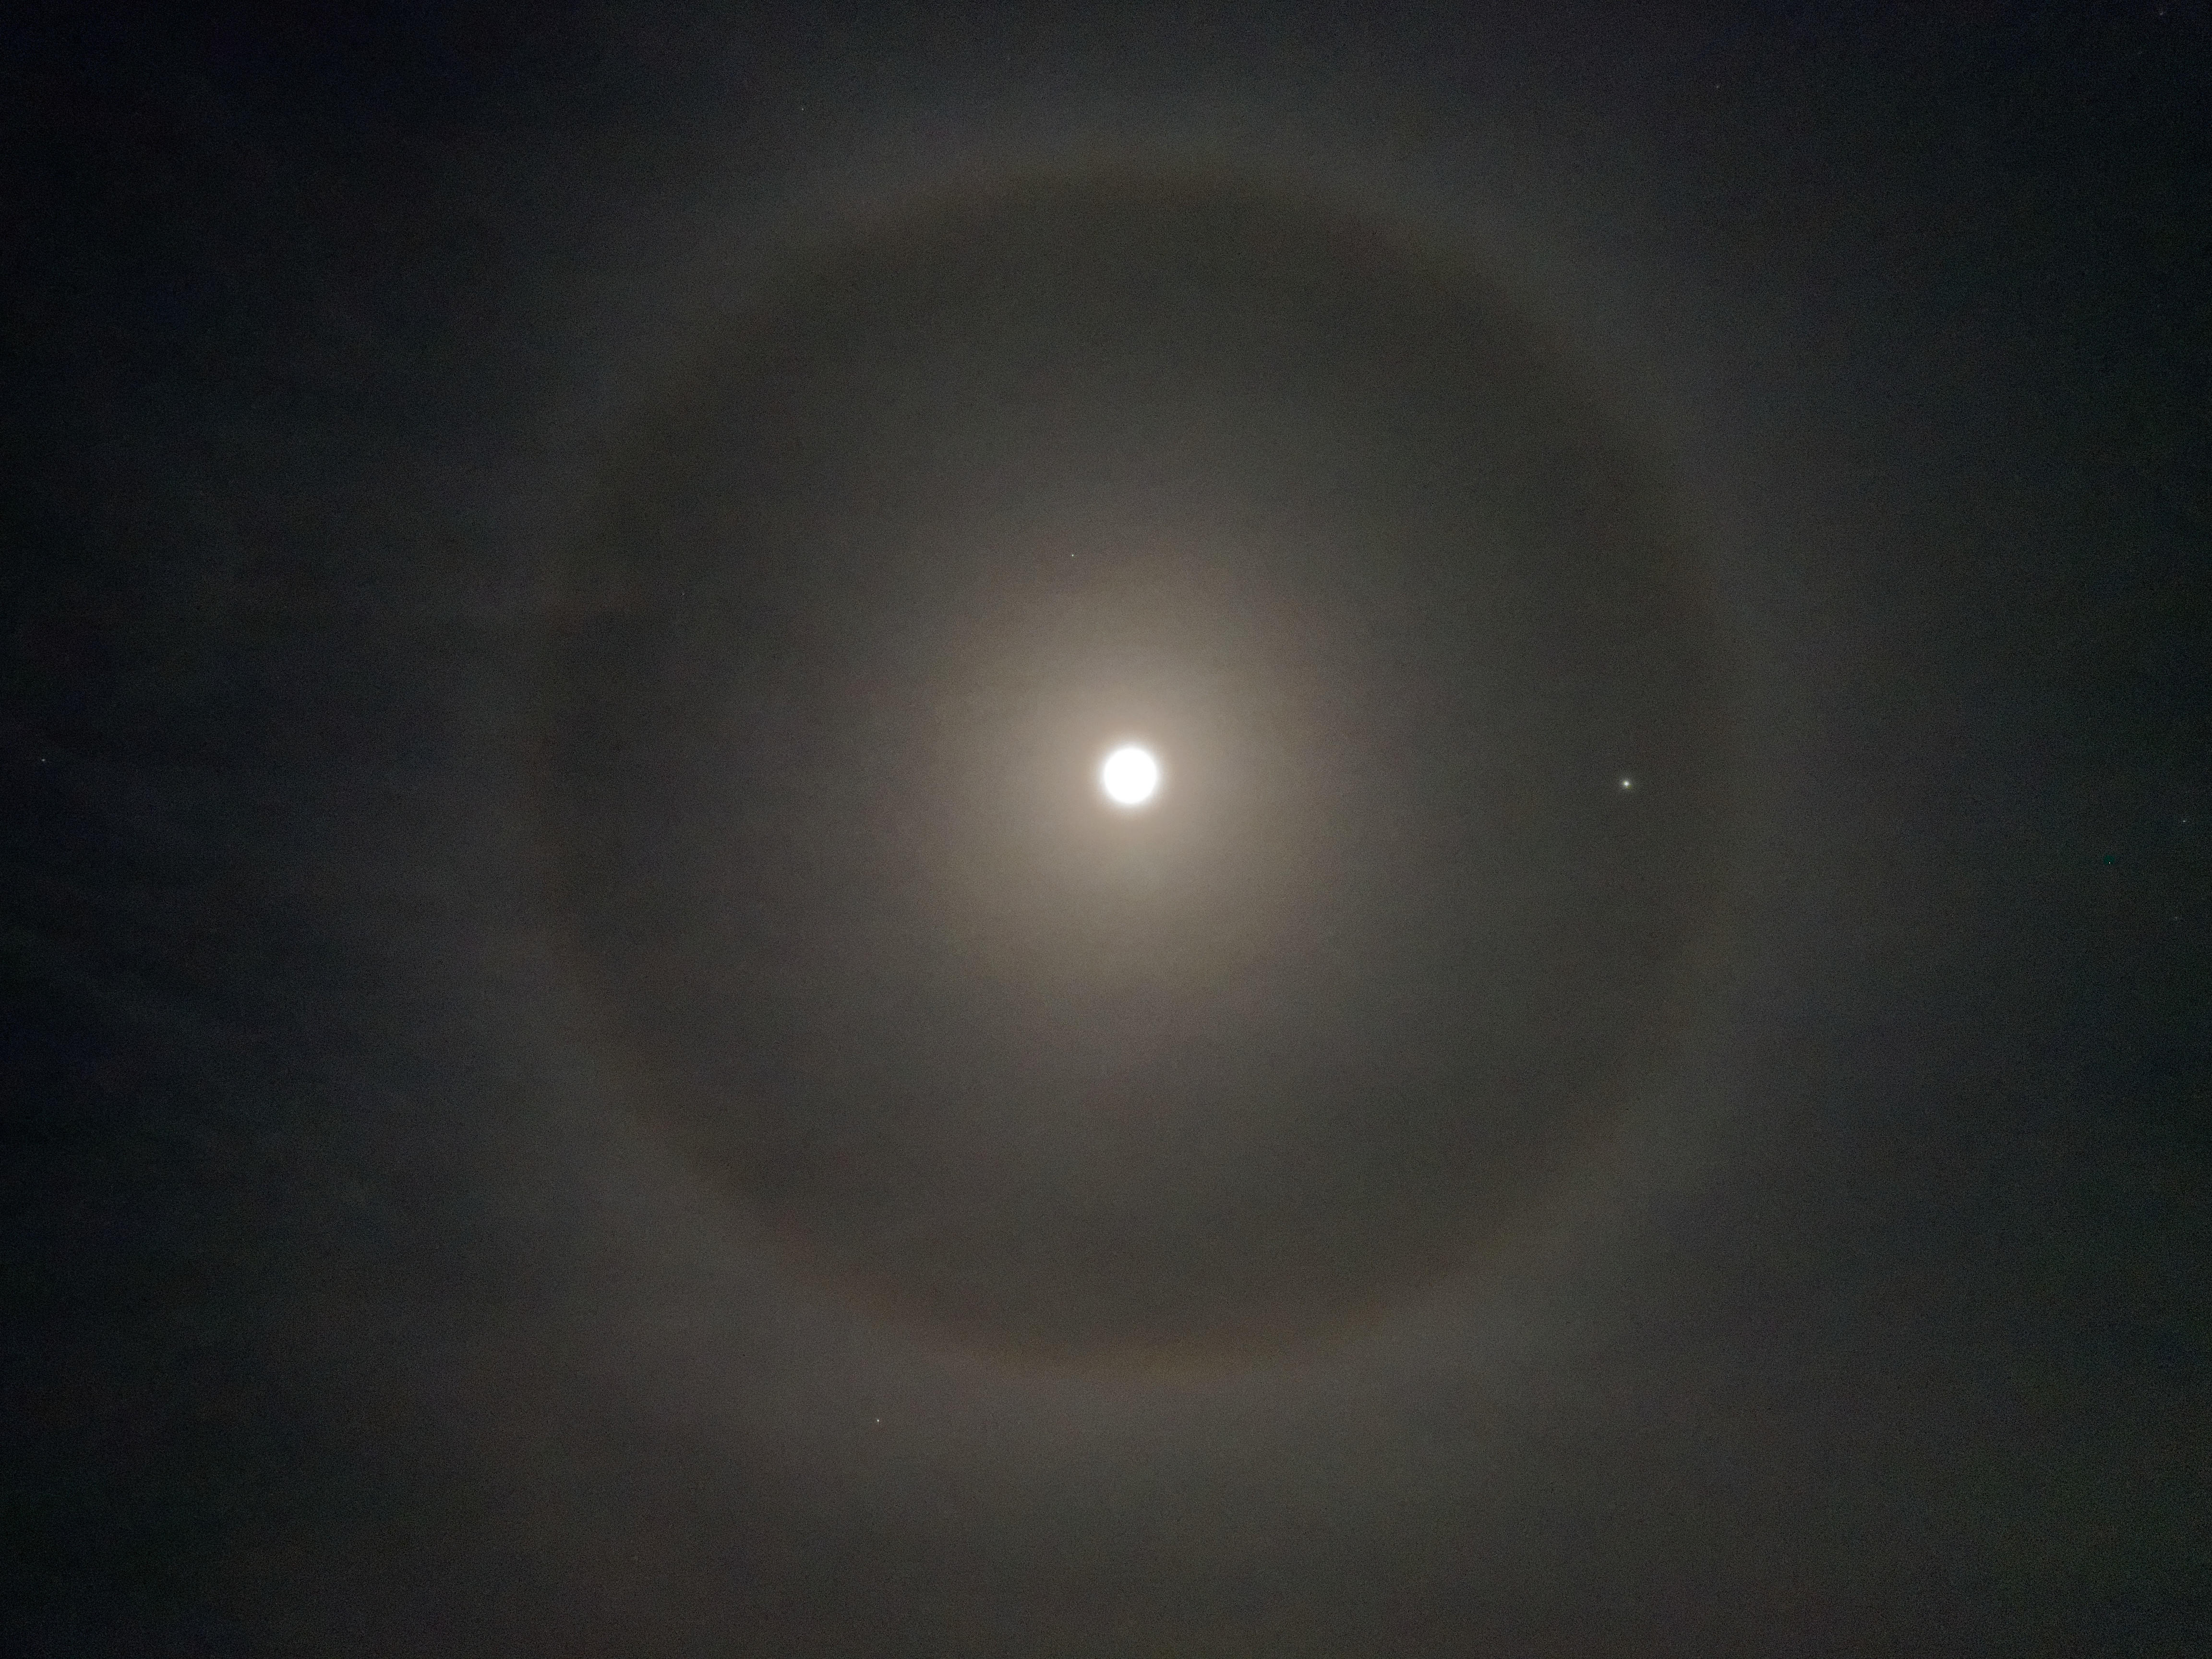 This should be Moon-halo-2.jpeg.  Is it missing?